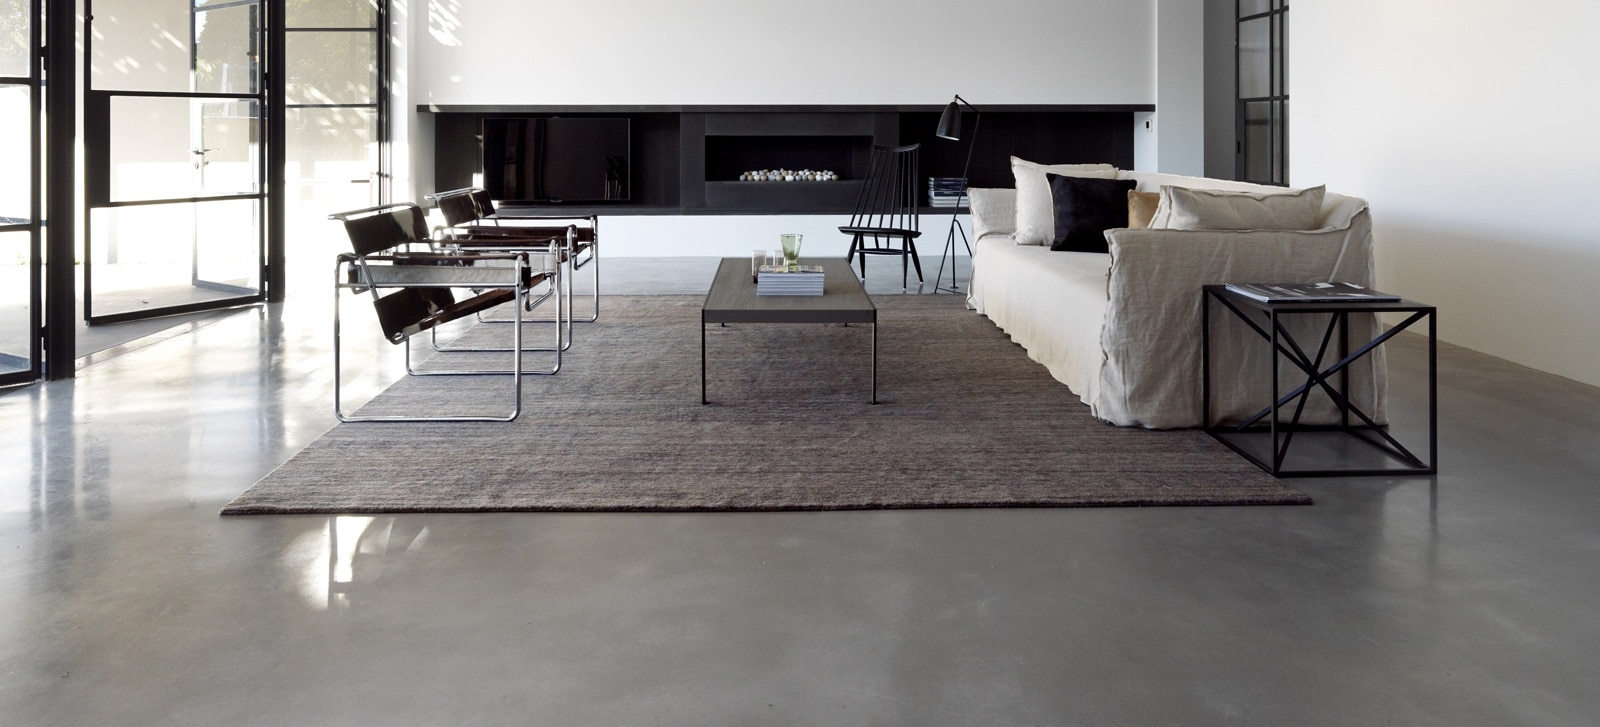 Luigi Rosselli Architects | polished concrete floor in a